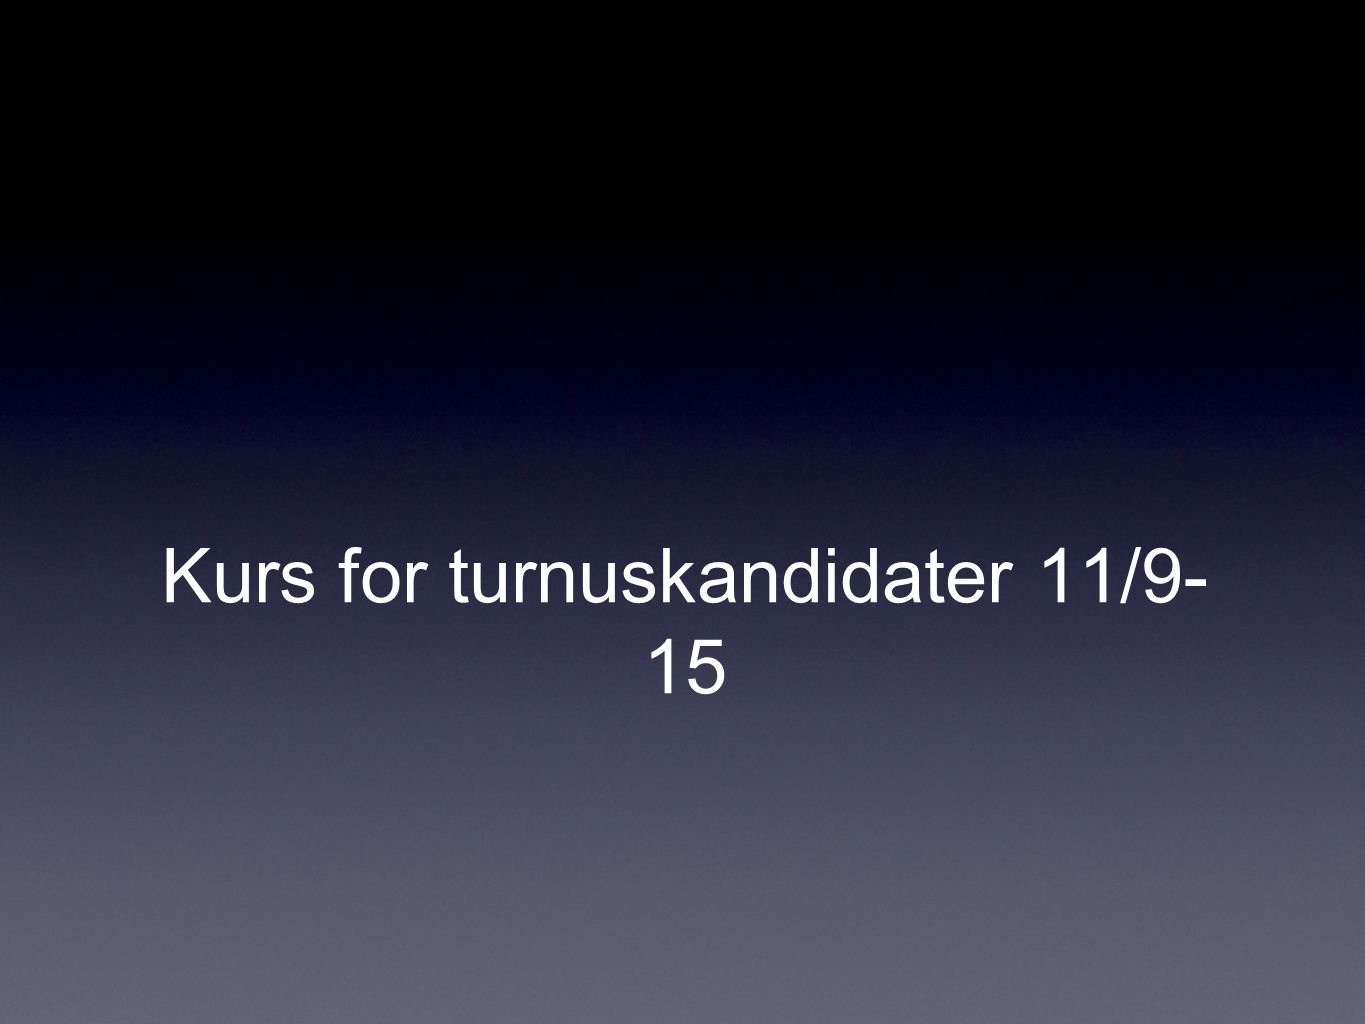 Kurs for turnuskandidater 11/9- 15